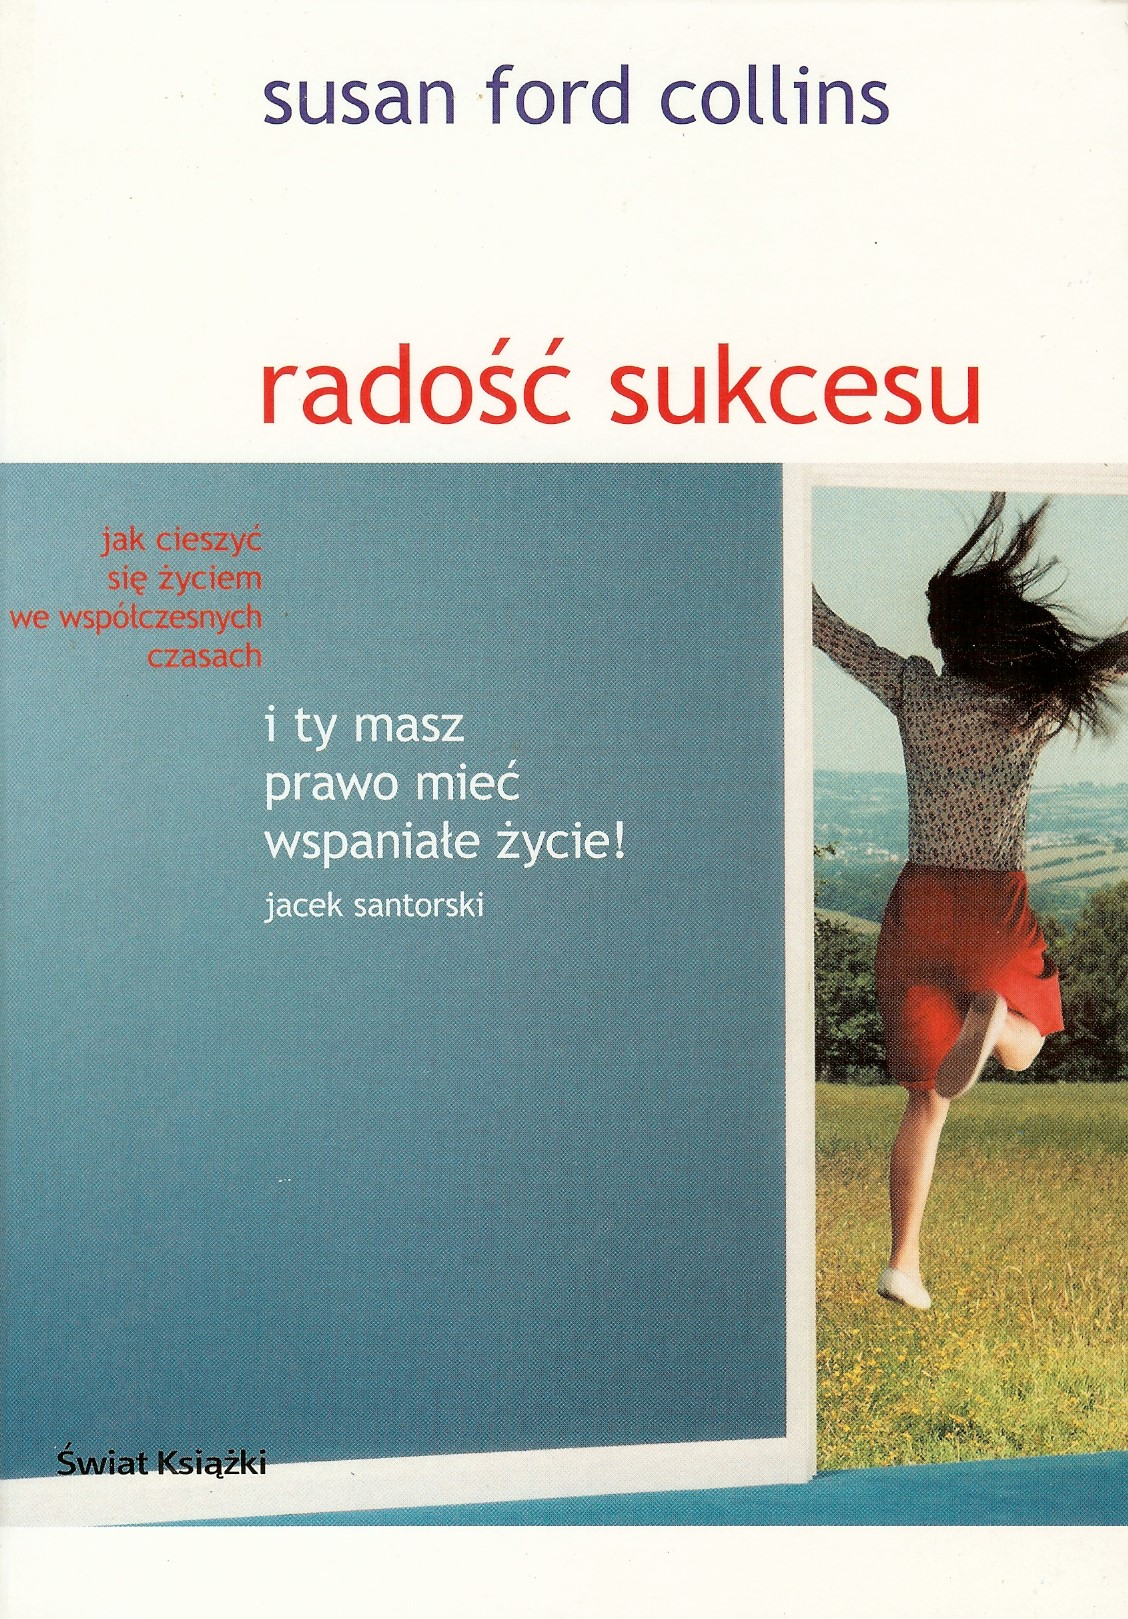 Copy of The Joy of Success in Polish